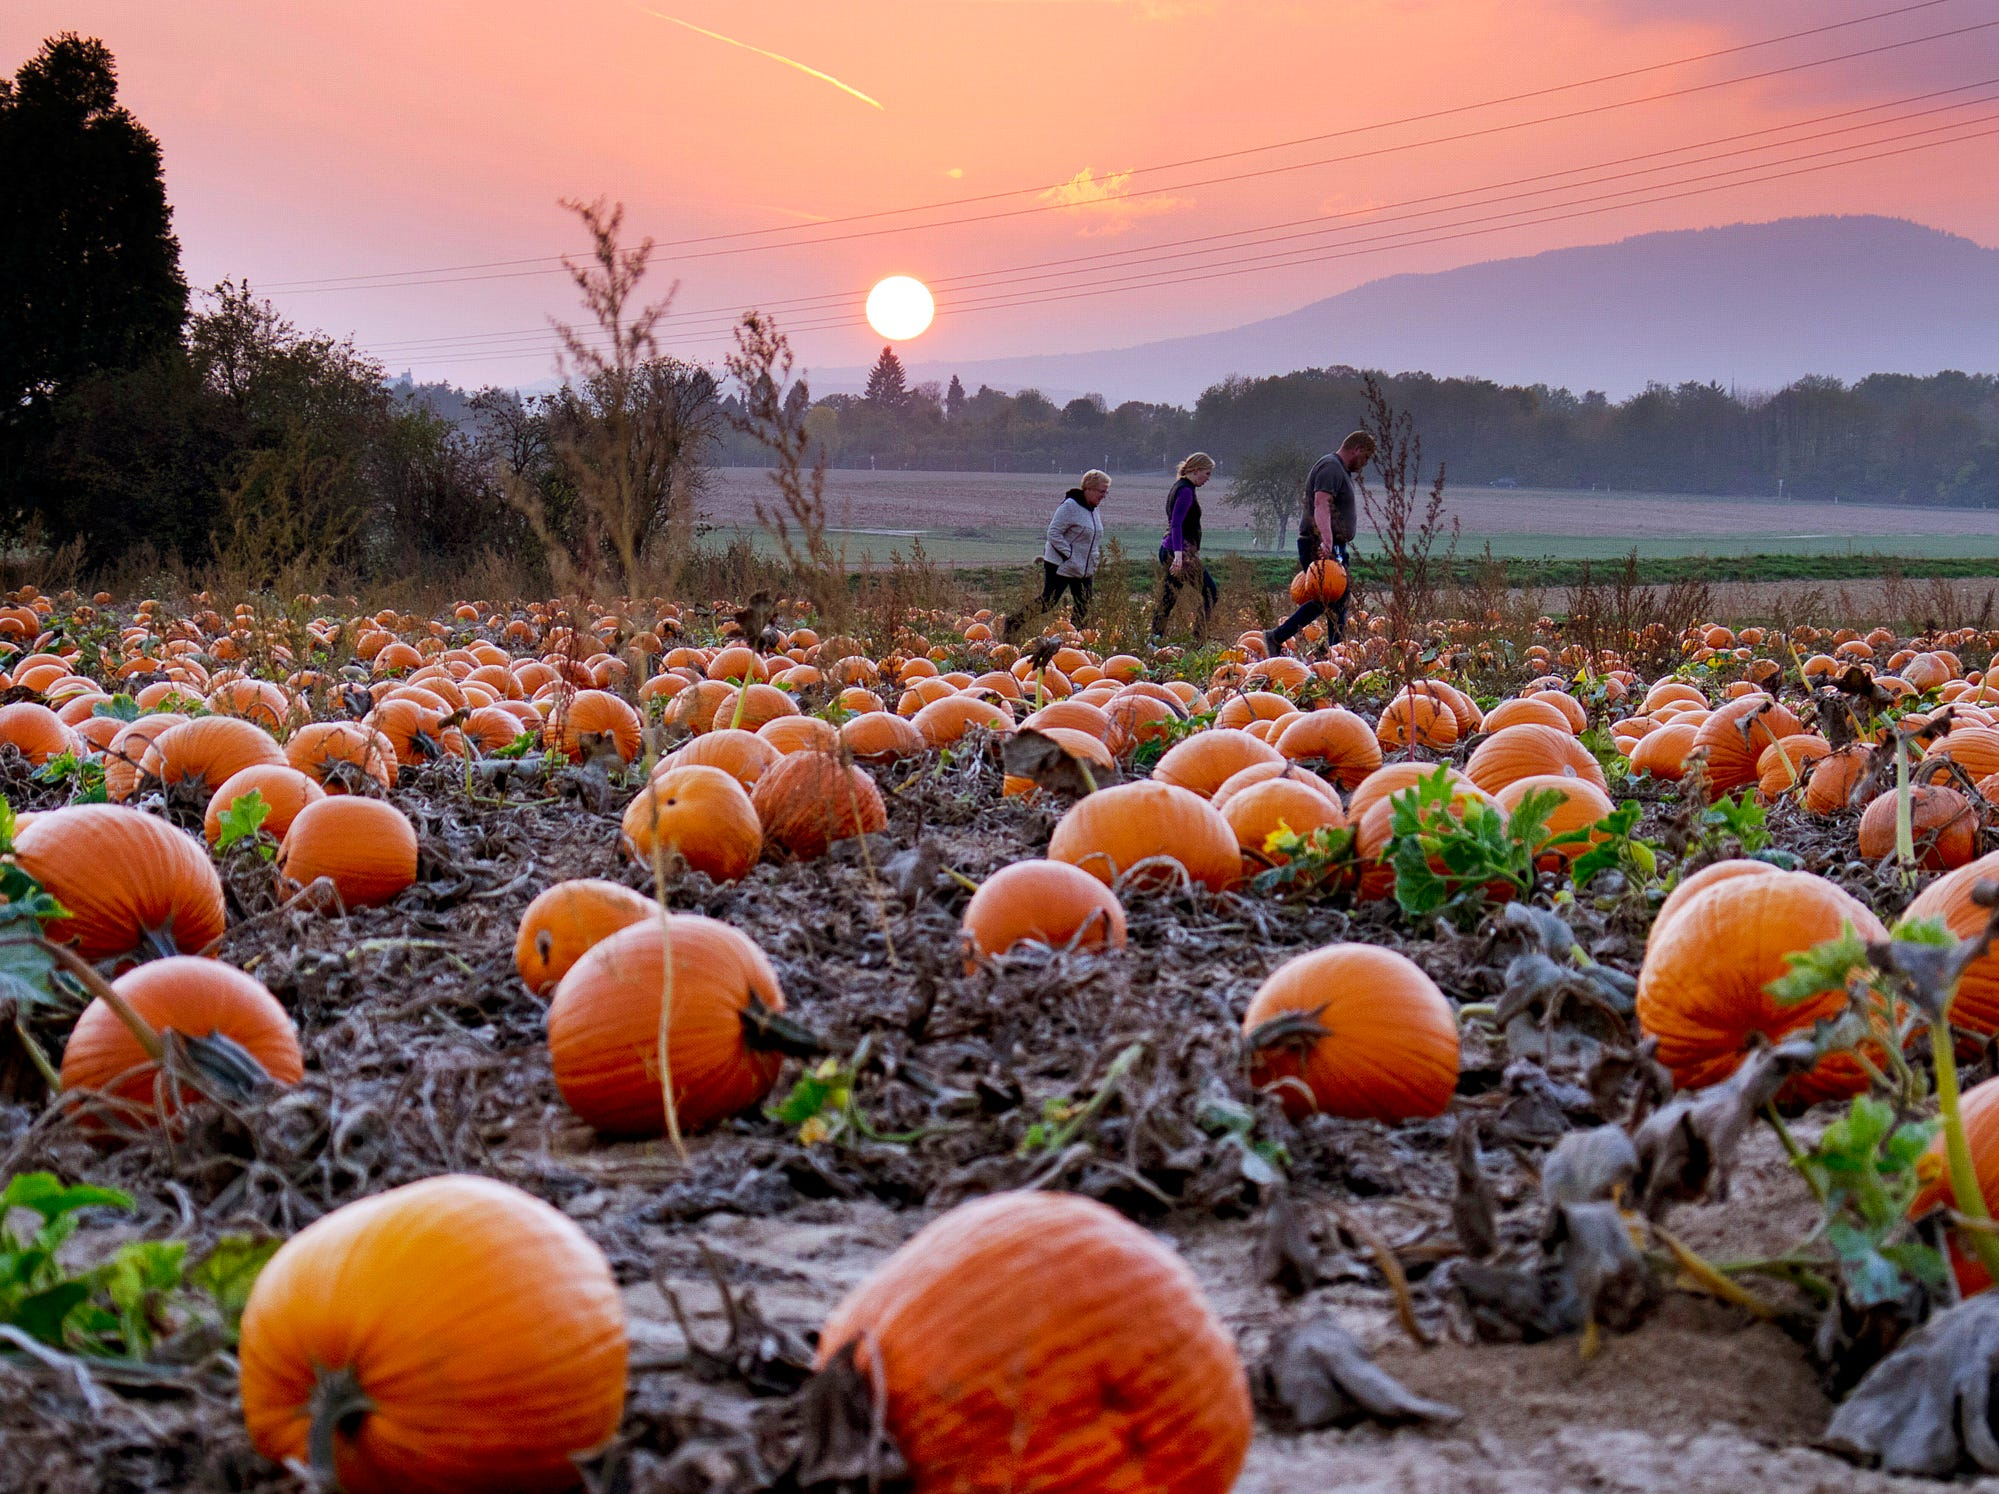 People collect pumpkins on a field in the outskirts of Frankfurt, Germany, as the sun sets Thursday, Oct. 18, 2018. (AP Photo/Michael Probst)